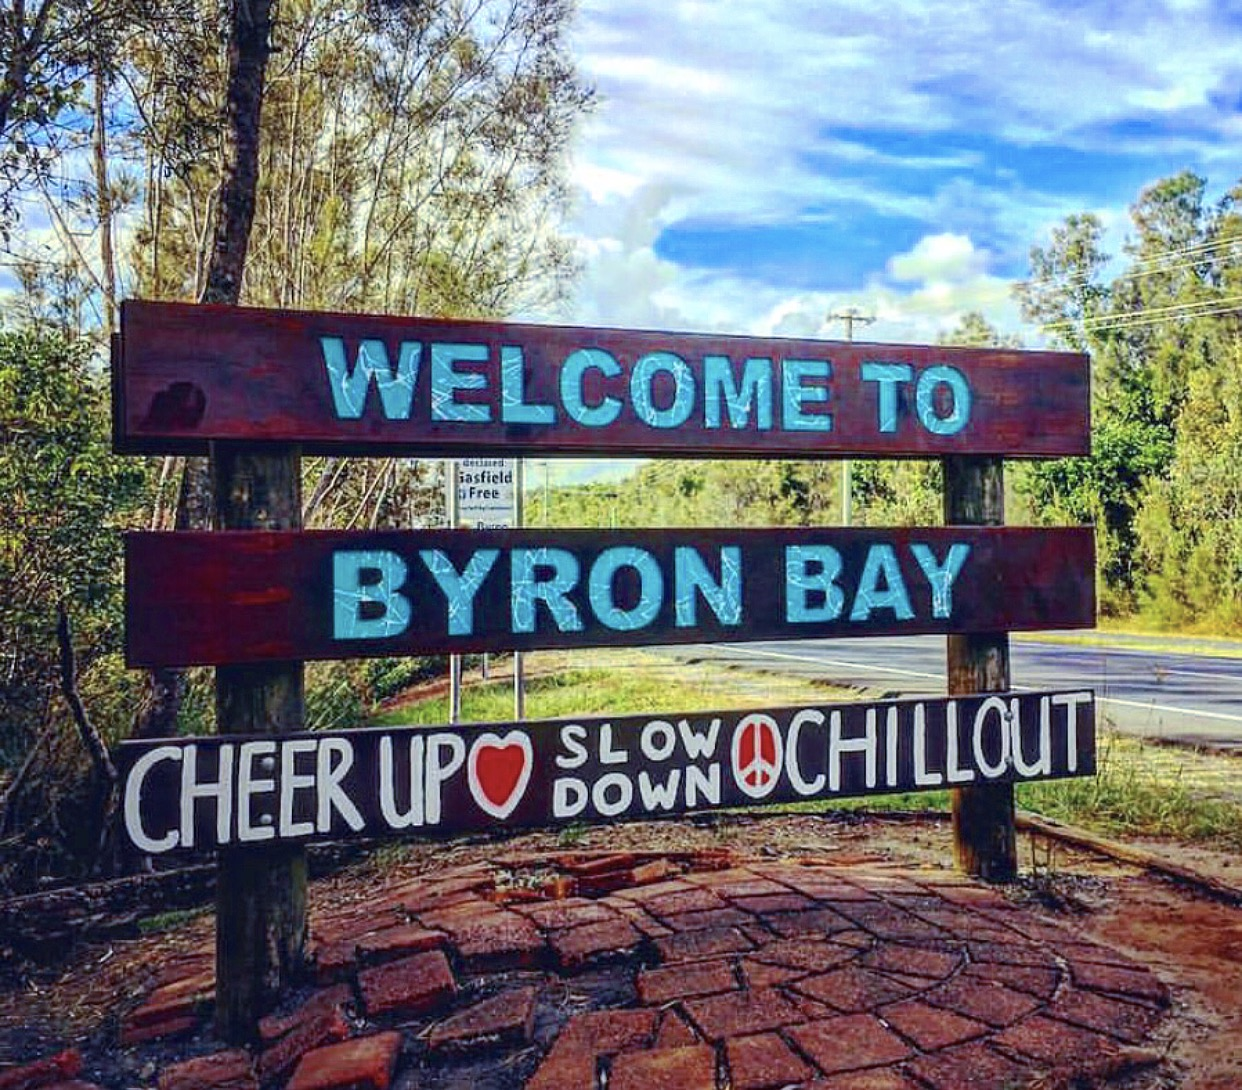 """""""Welcome to Byron bay, cheer up, slow down & chill out""""."""